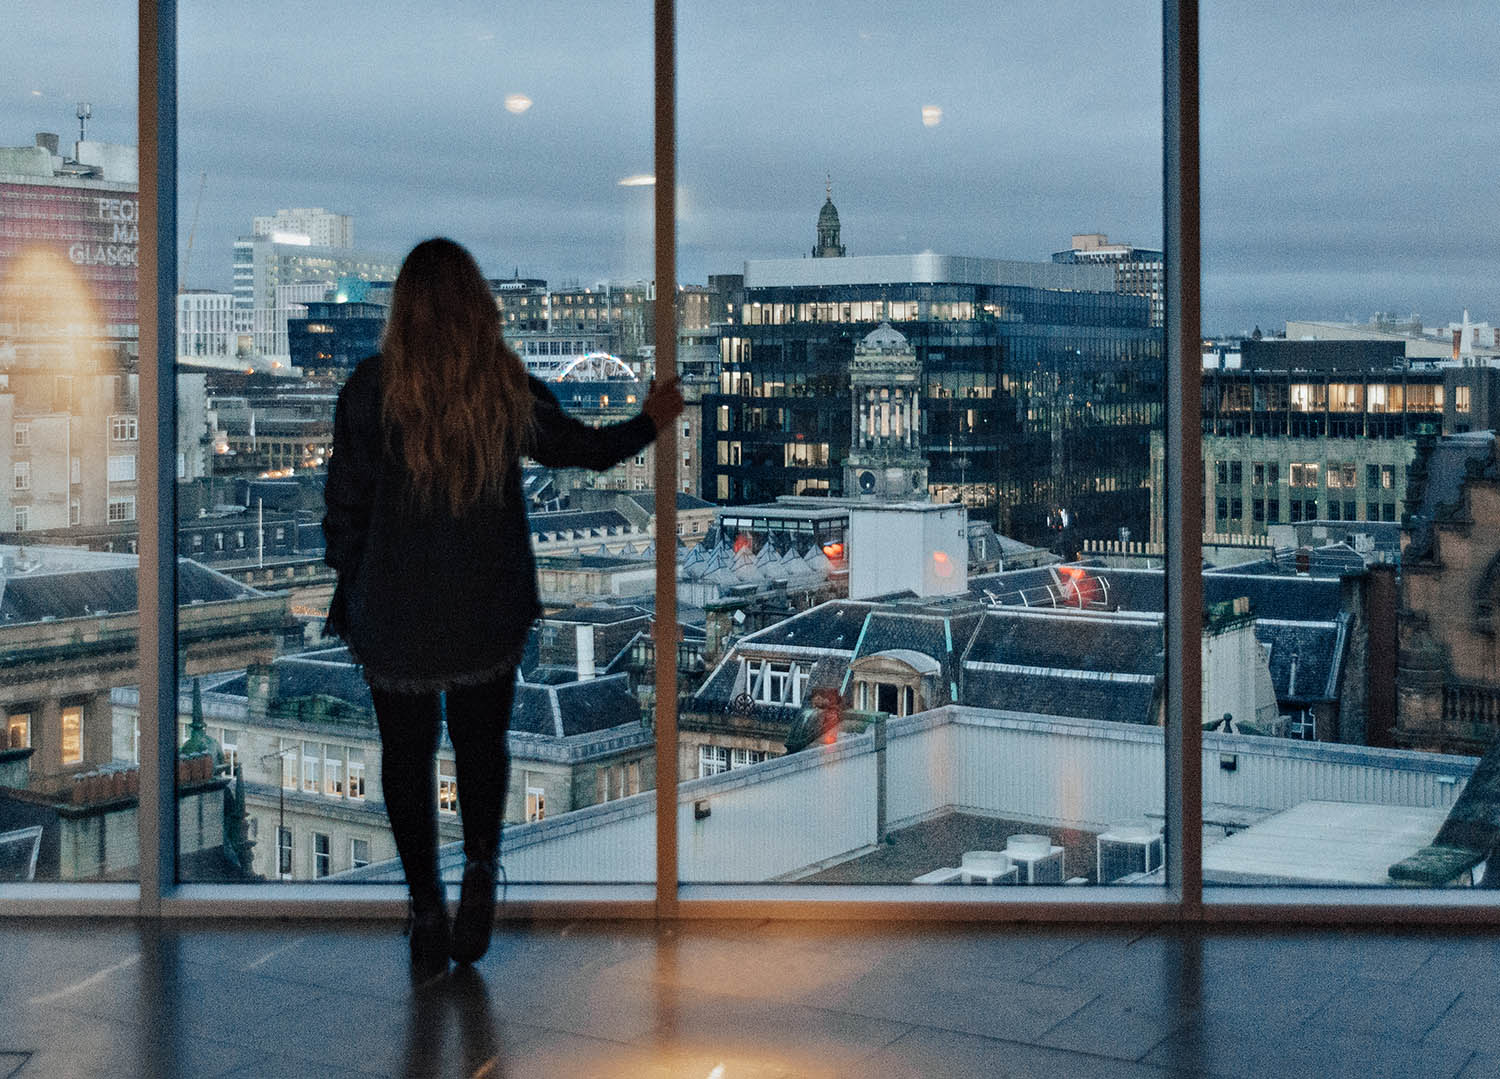 View from The Lighthouse in Glasgow